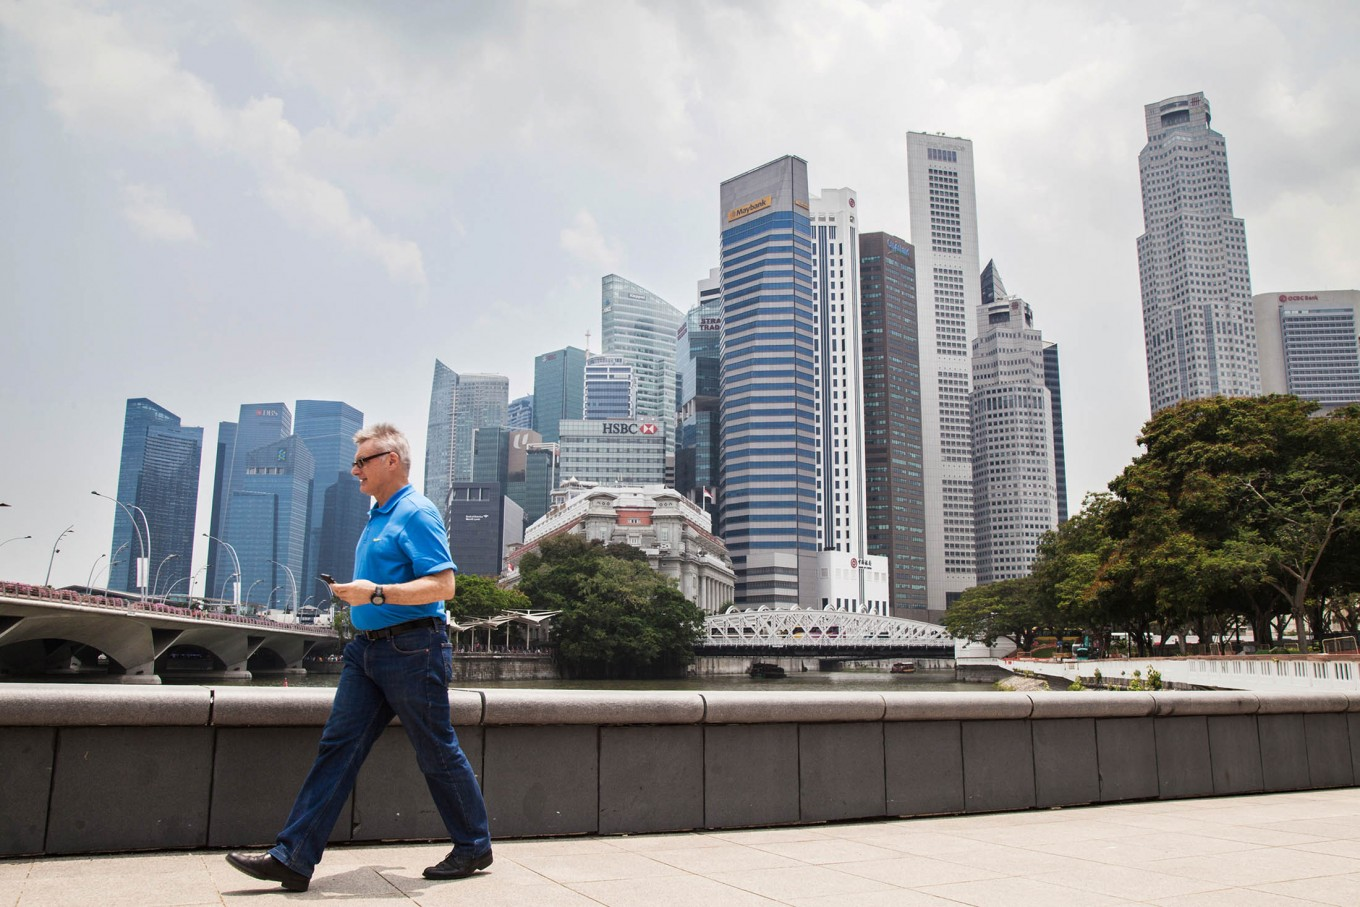 Singapore makes a 'good start' on its debt restructuring ambitions